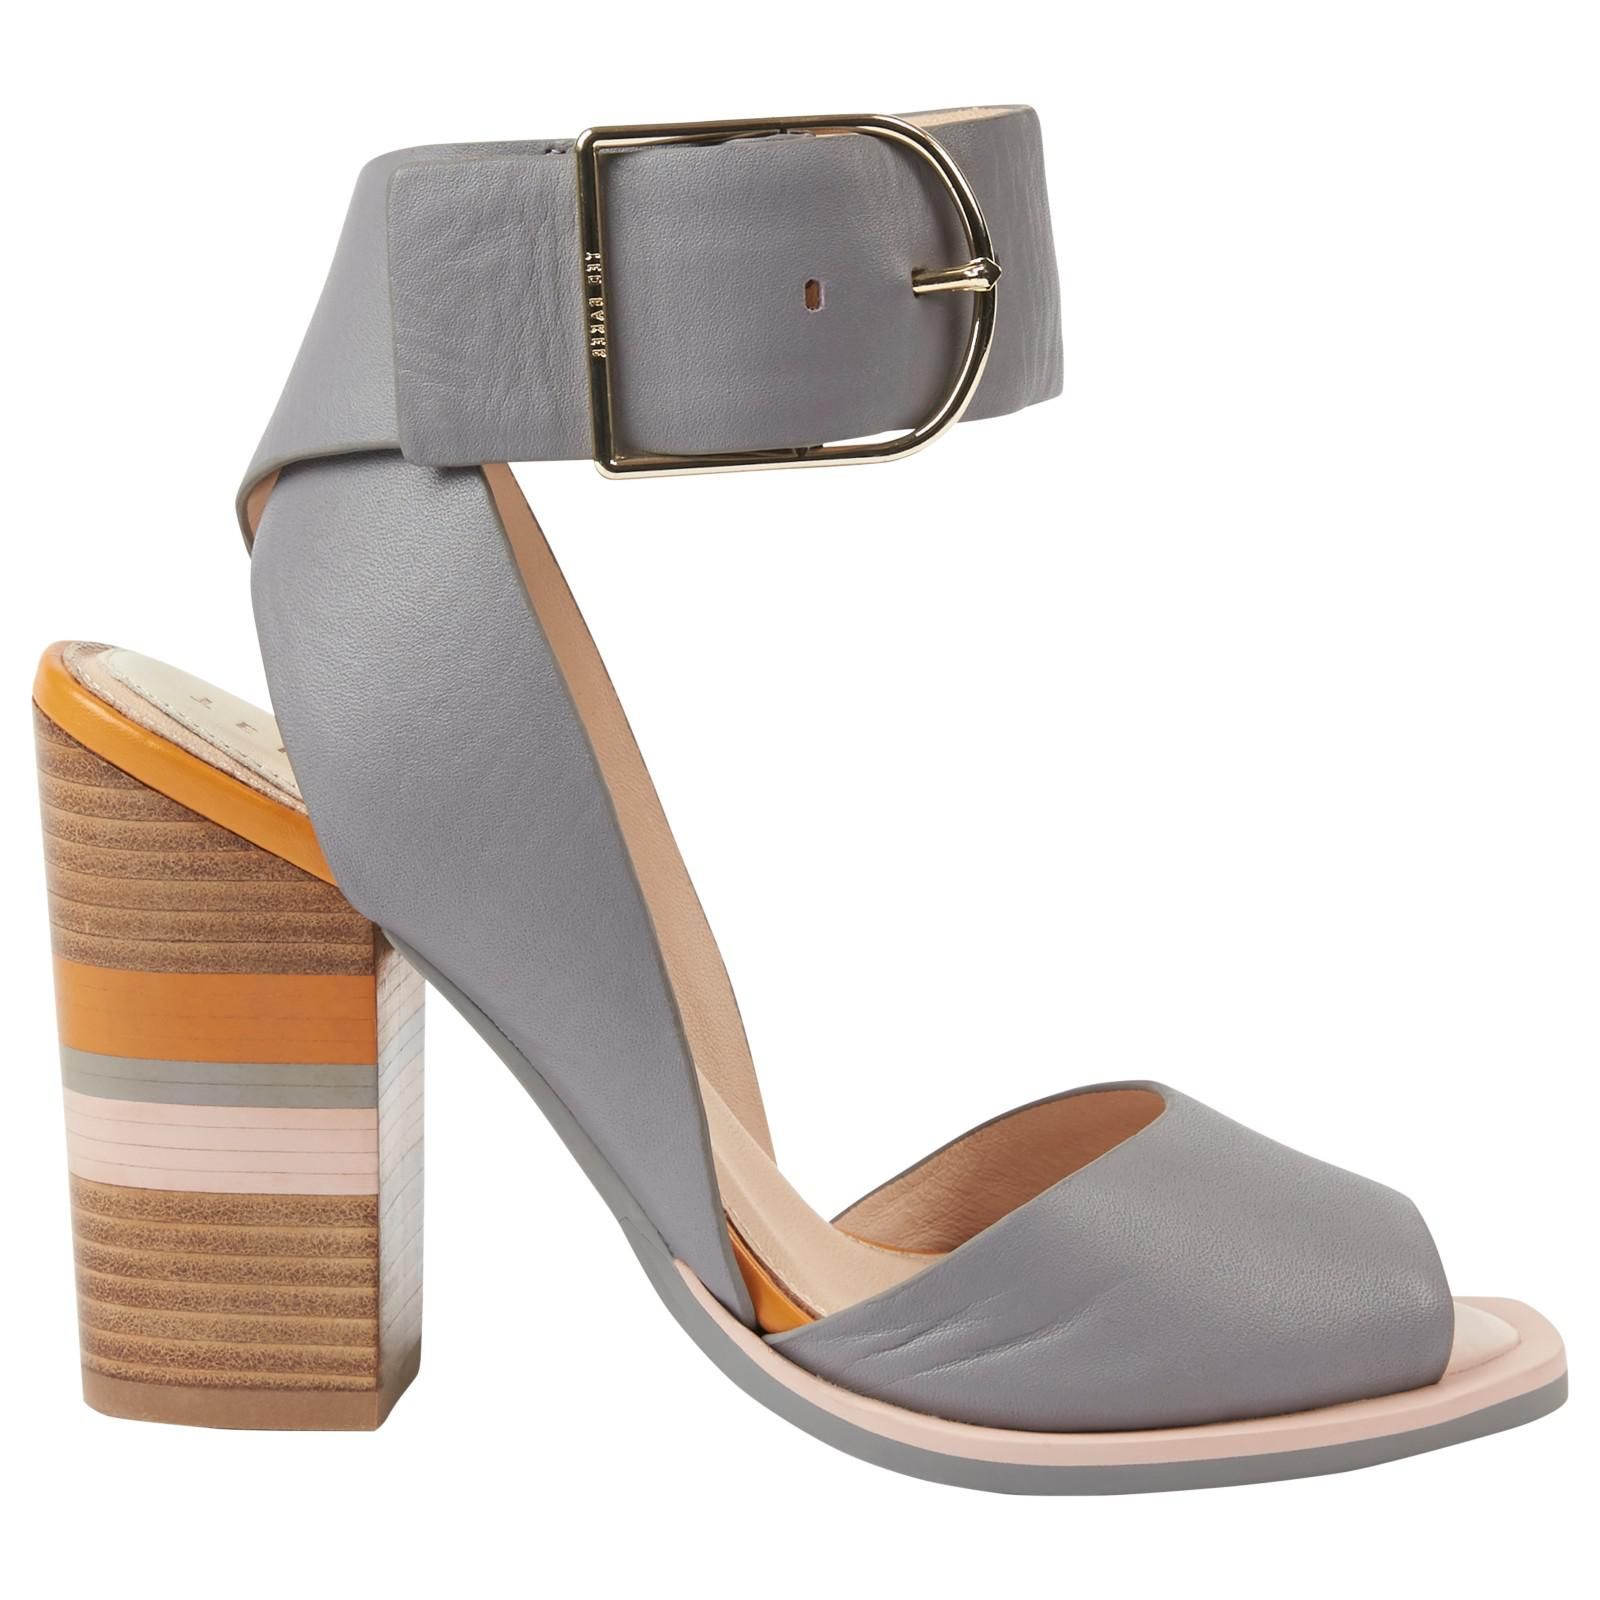 af67d4144709bc Ted Baker Thaise Block Heeled Sandals in Gray - Lyst